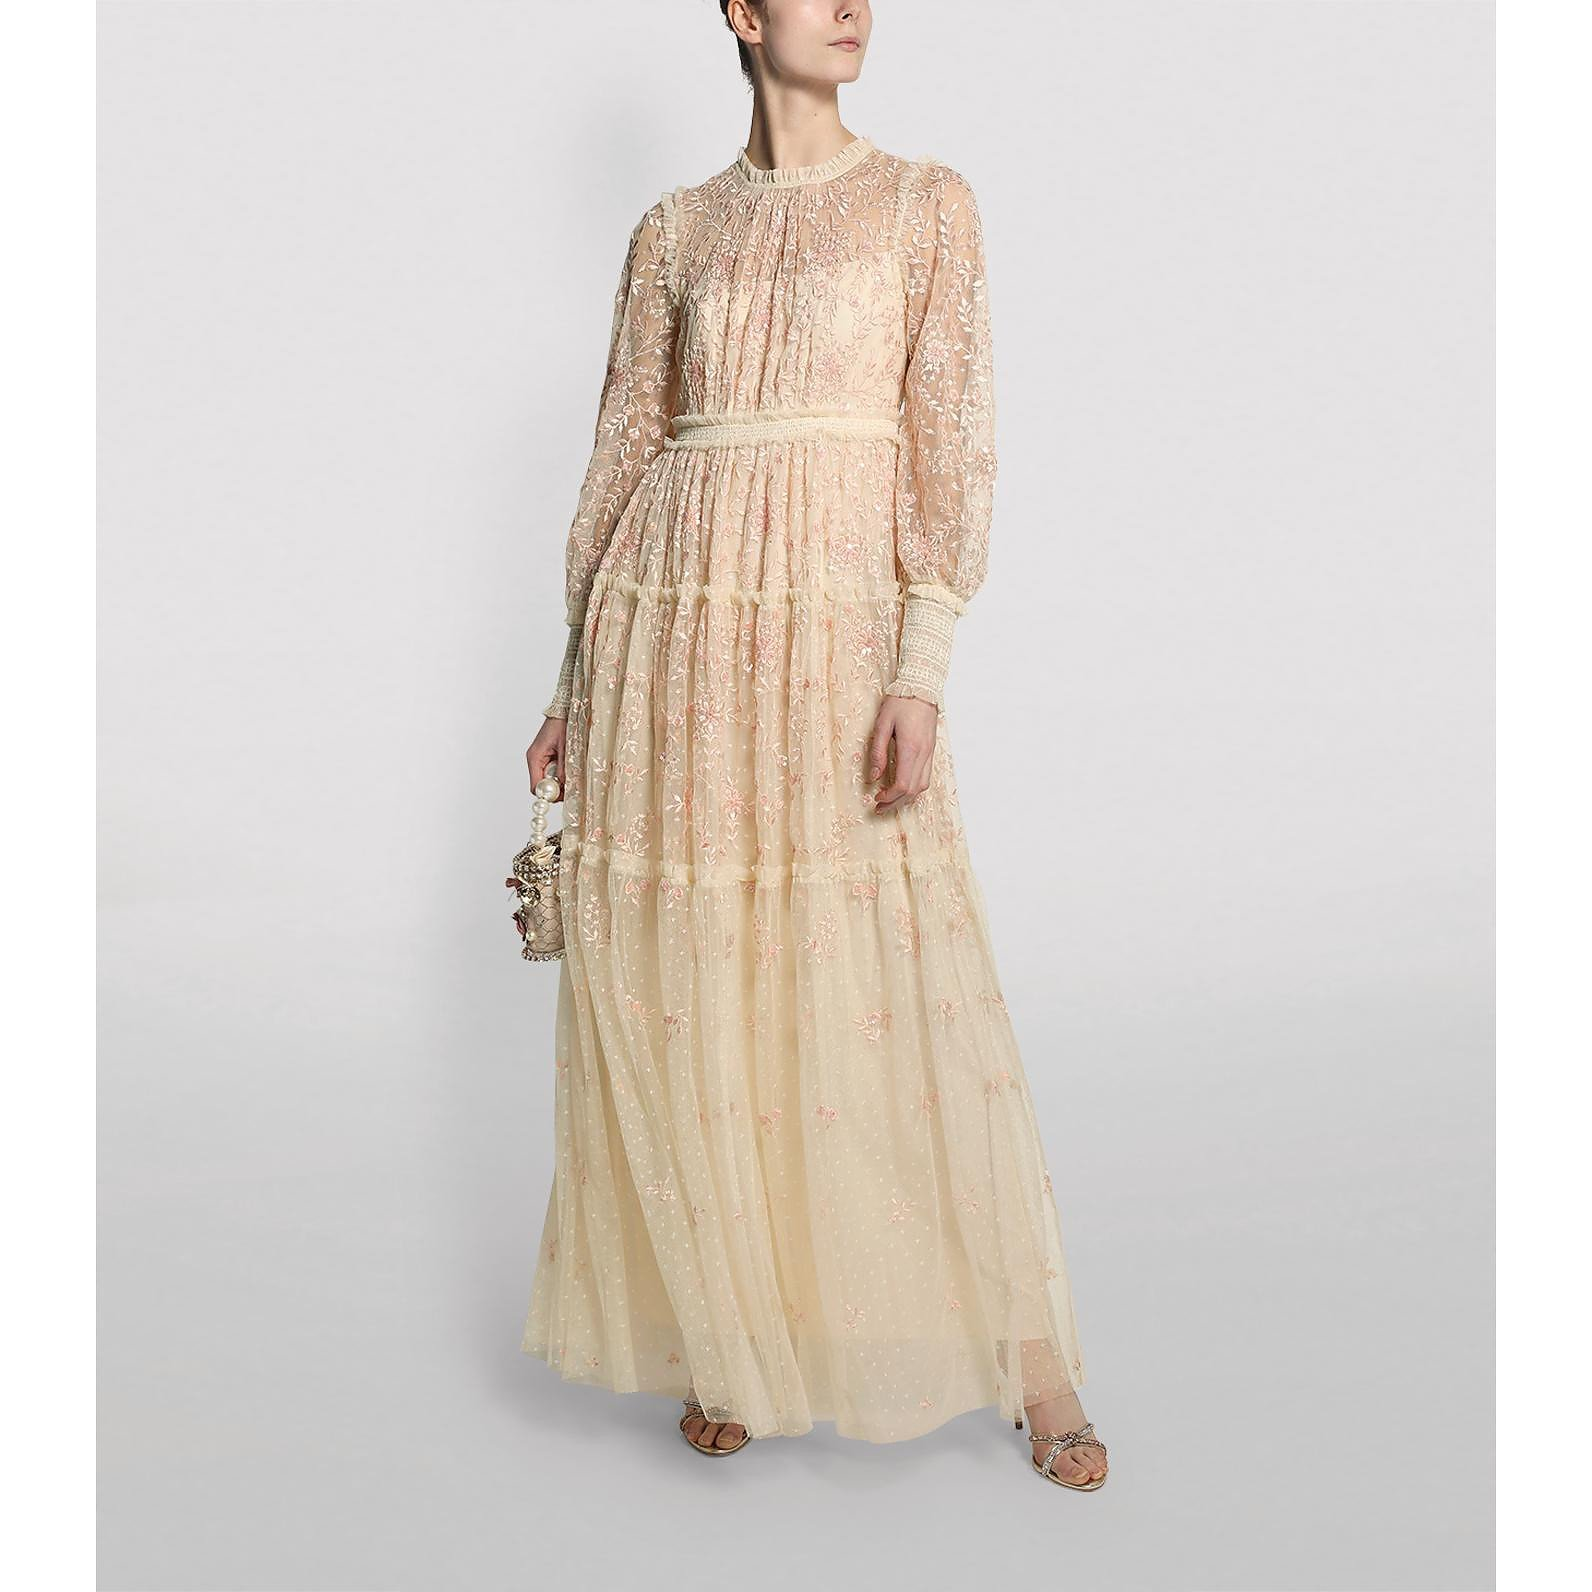 Needle & Thread Whitethorn Sequin Gown